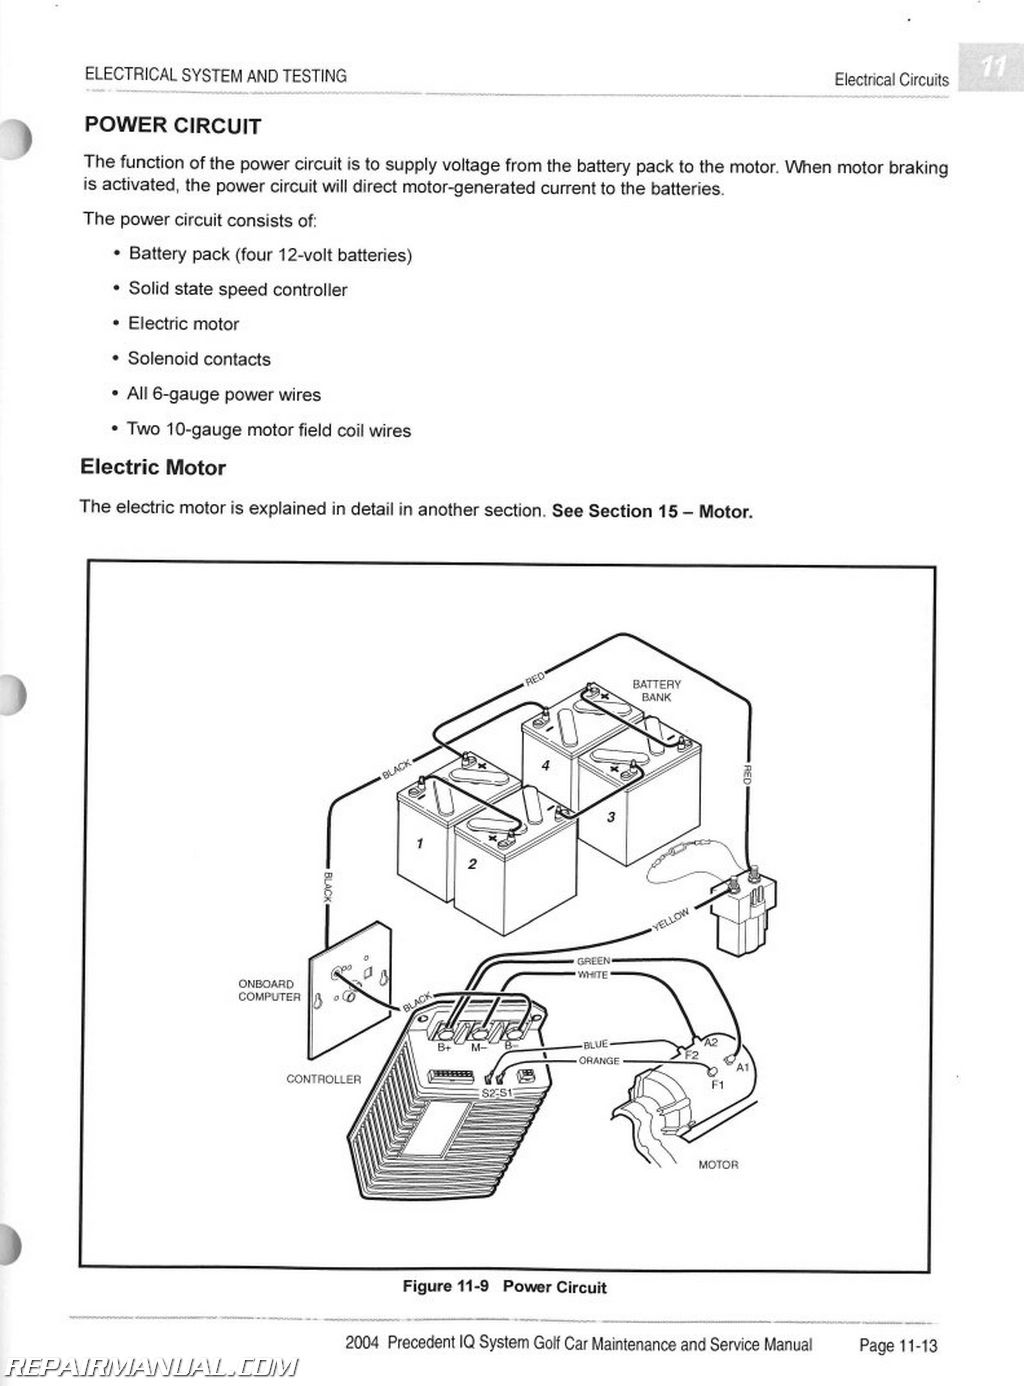 hight resolution of wiring diagram for 48 volt 2007 club car ds golf cart 36